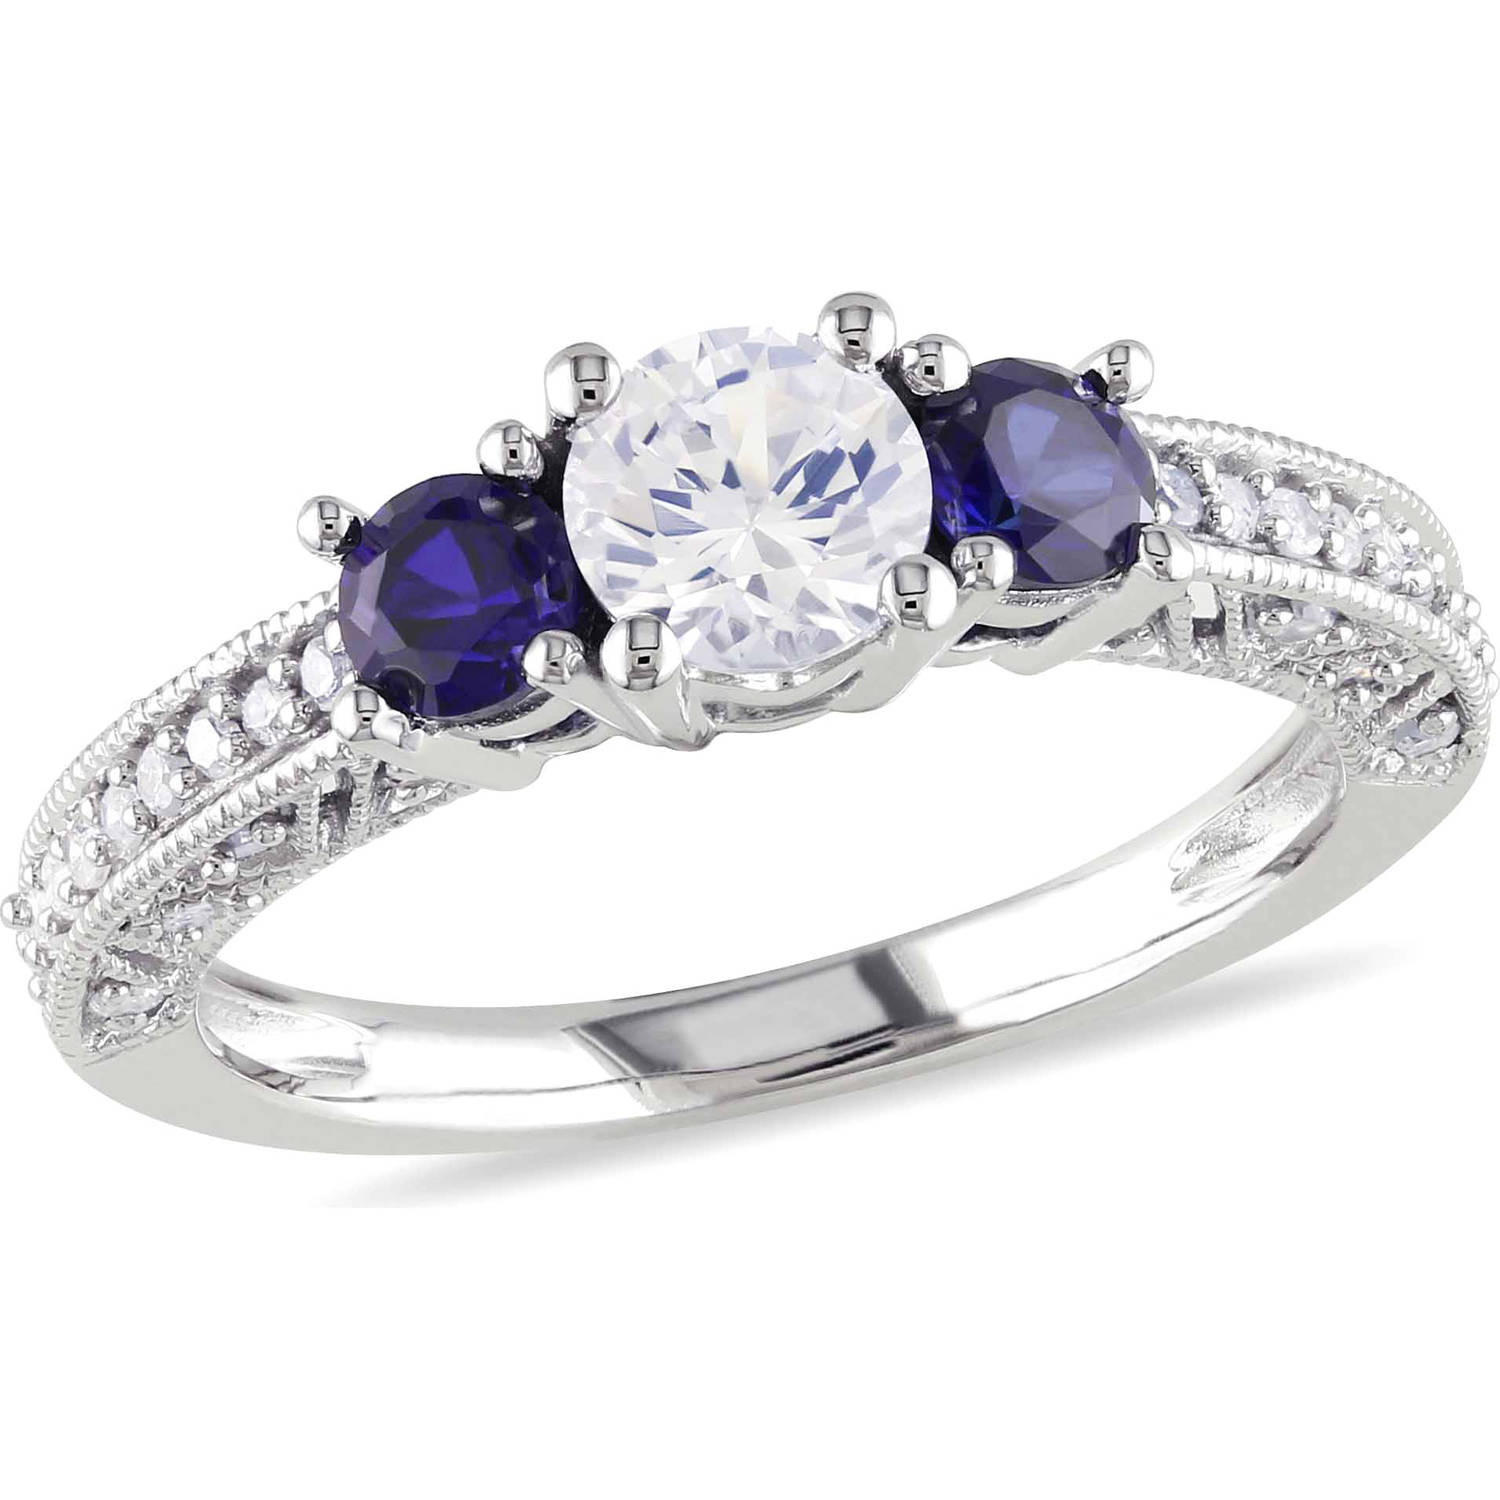 Tangelo 1 Carat T.G.W. Created White and Blue Sapphire and 1/6 Carat T.W. Diamond 10kt White Gold Three Stone Engagement Ring